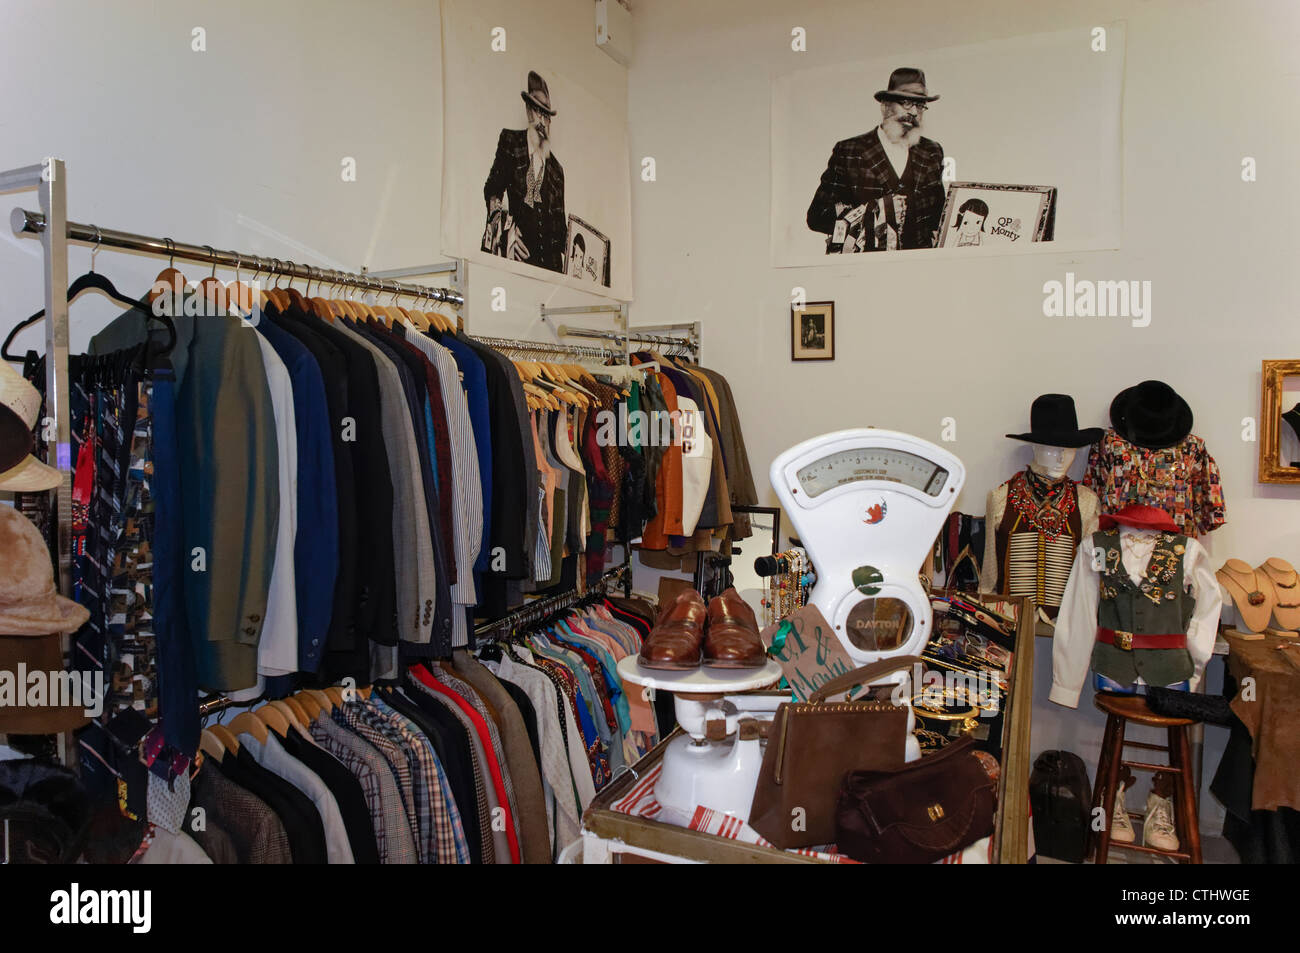 Indoor Market for antiques, clothes , design, juwelry in Greenwich Village, Manhattan, - Stock Image